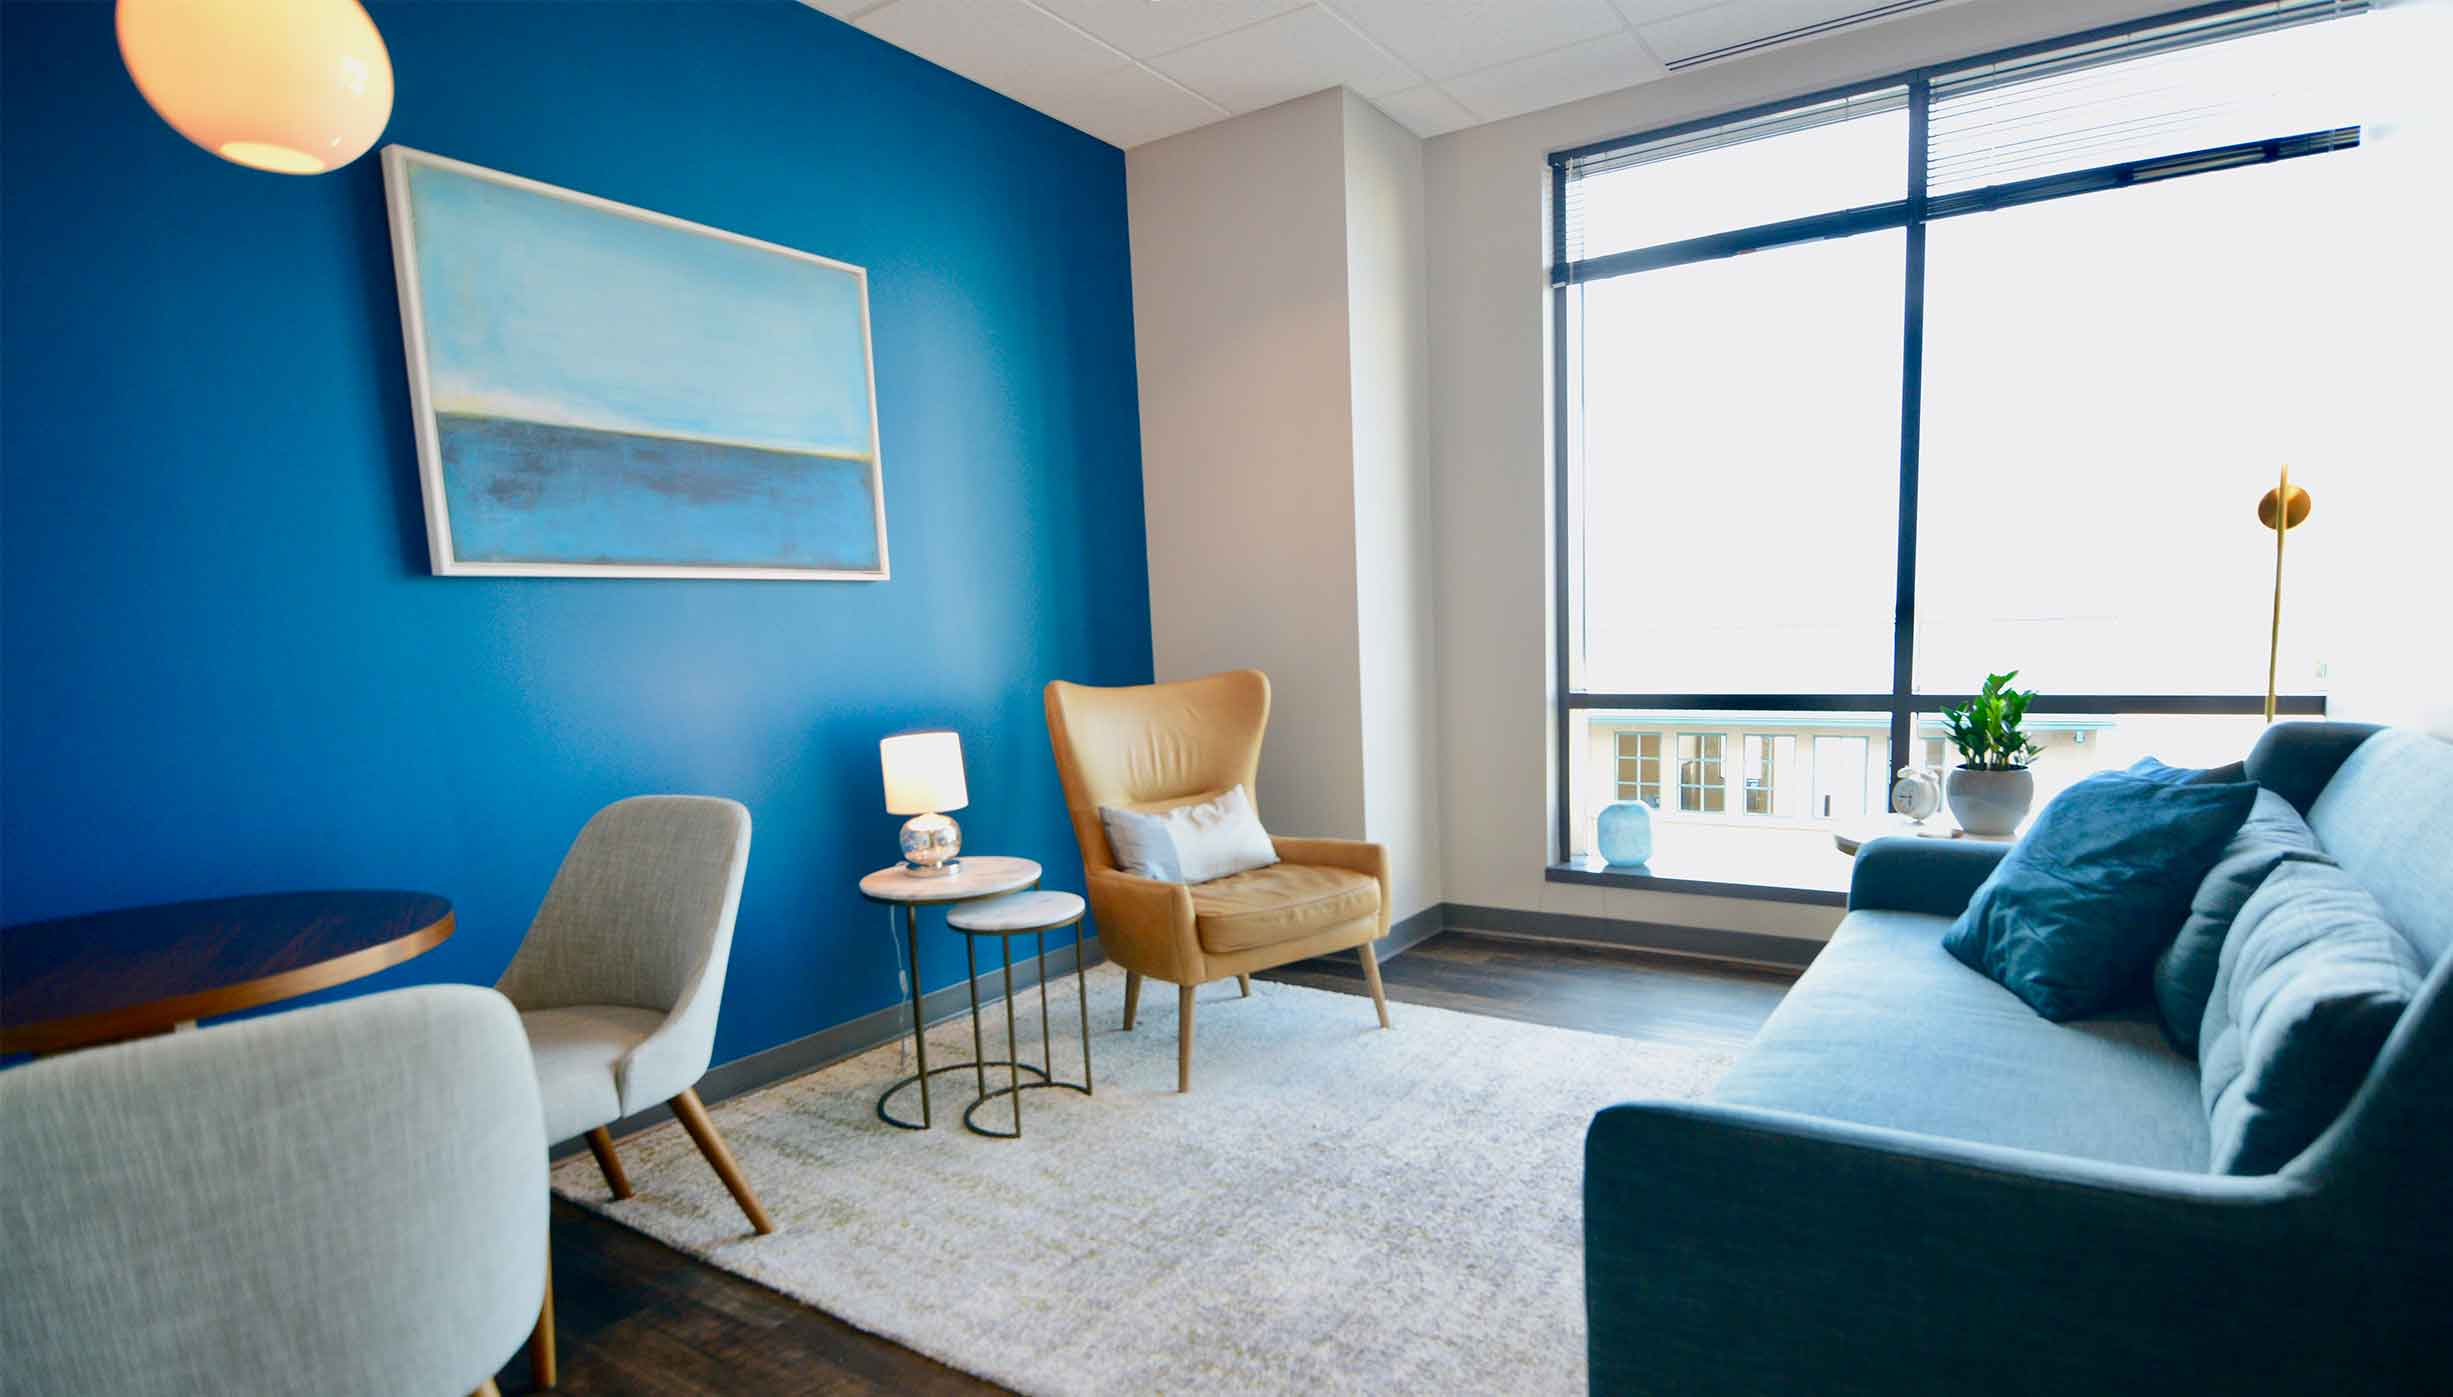 Brightly lit room with large windows and a welcoming blue wall with couch, chairs and tables, plants and modern art for a comfortable therapeutic feel in Liberty Center. ThrivePointe Counseling helps adults and children through therapy in Liberty Township, OH 45069